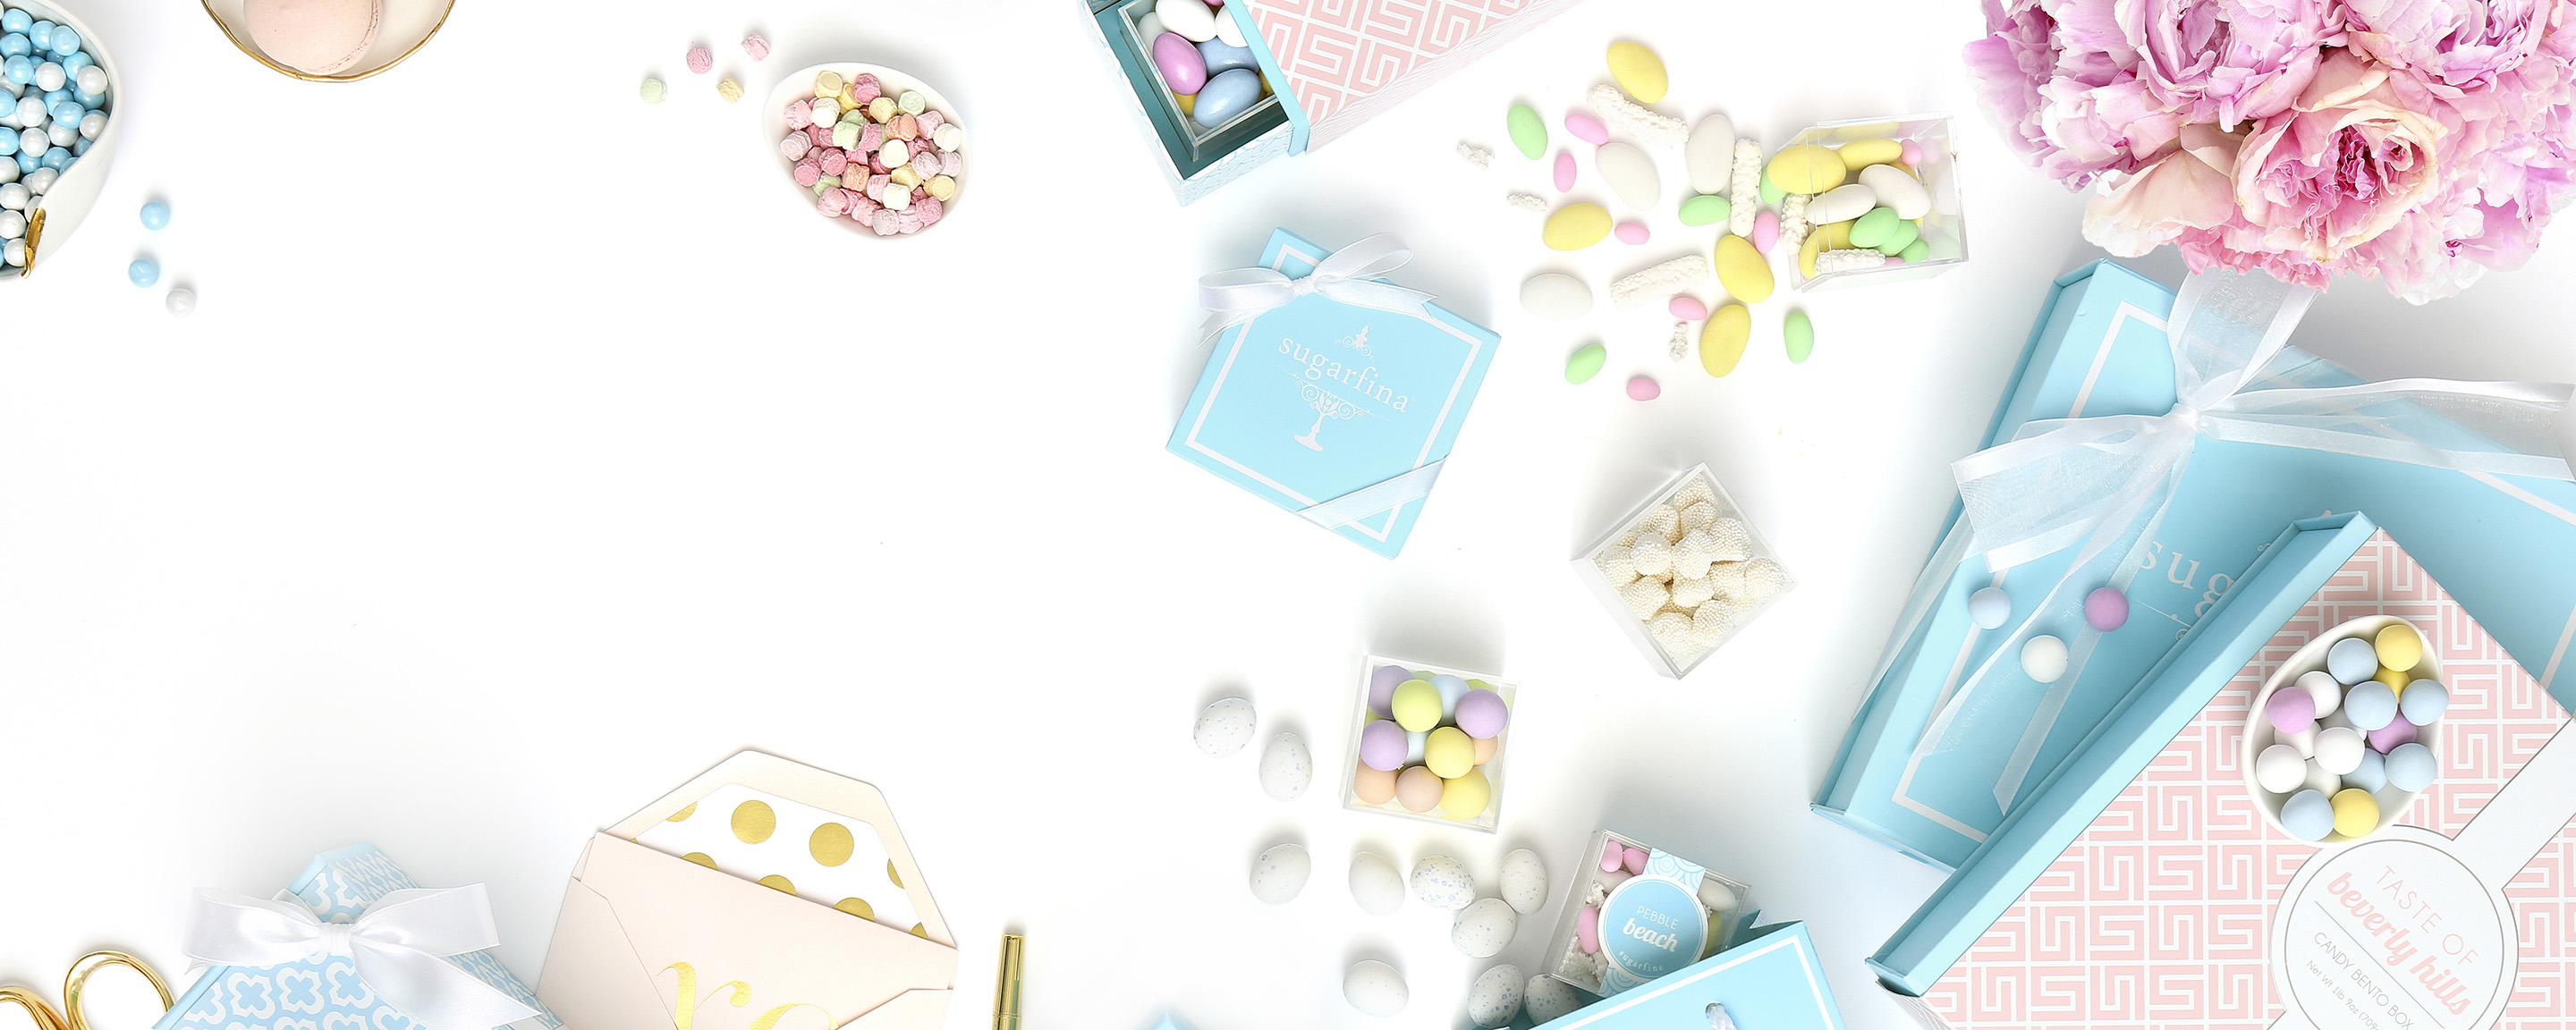 Sugarfina A Luxury Candy Boutique